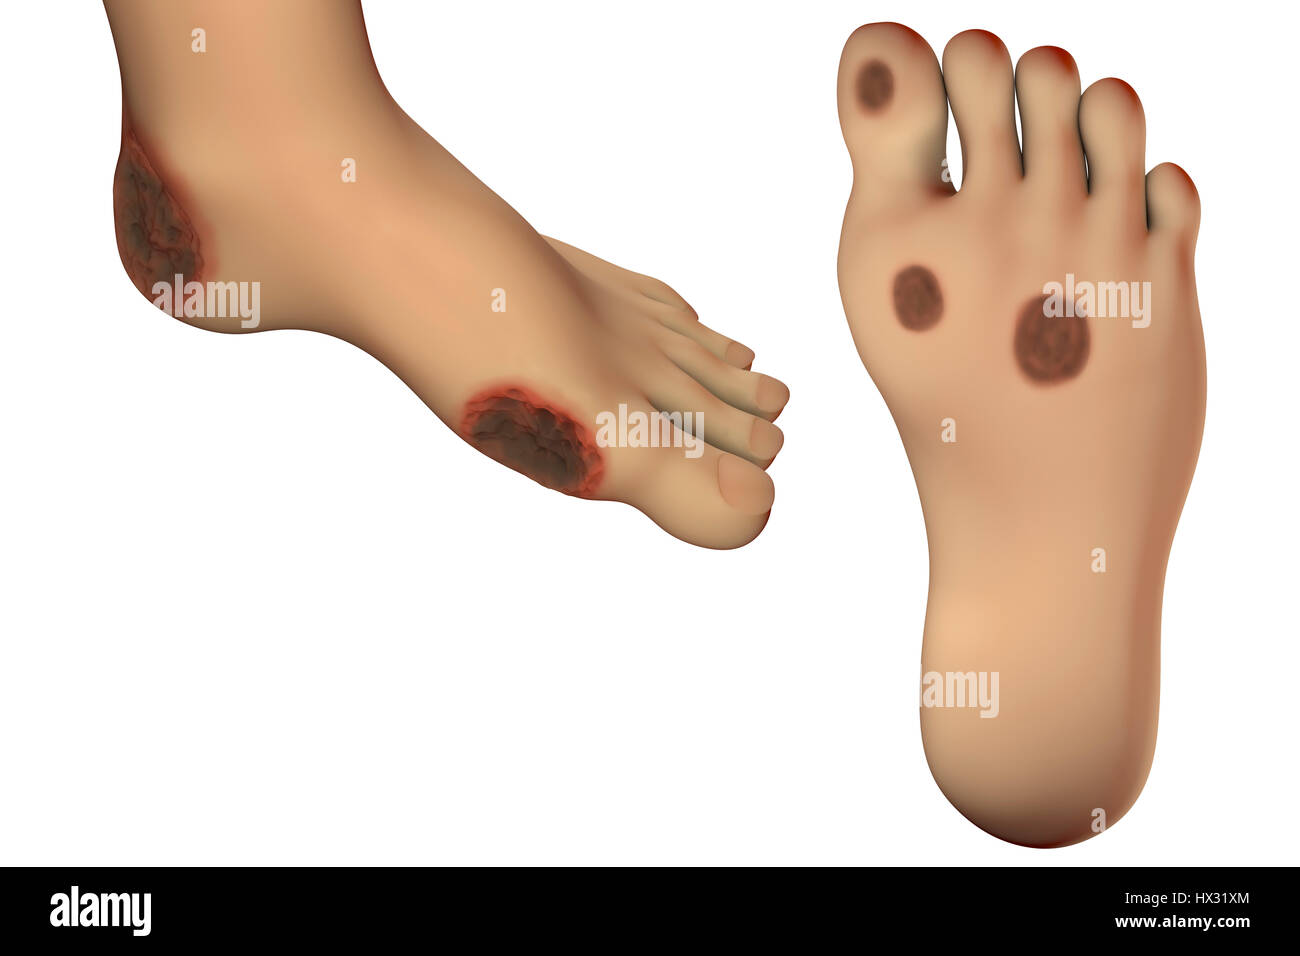 Foot Infection Stockfotos & Foot Infection Bilder - Alamy